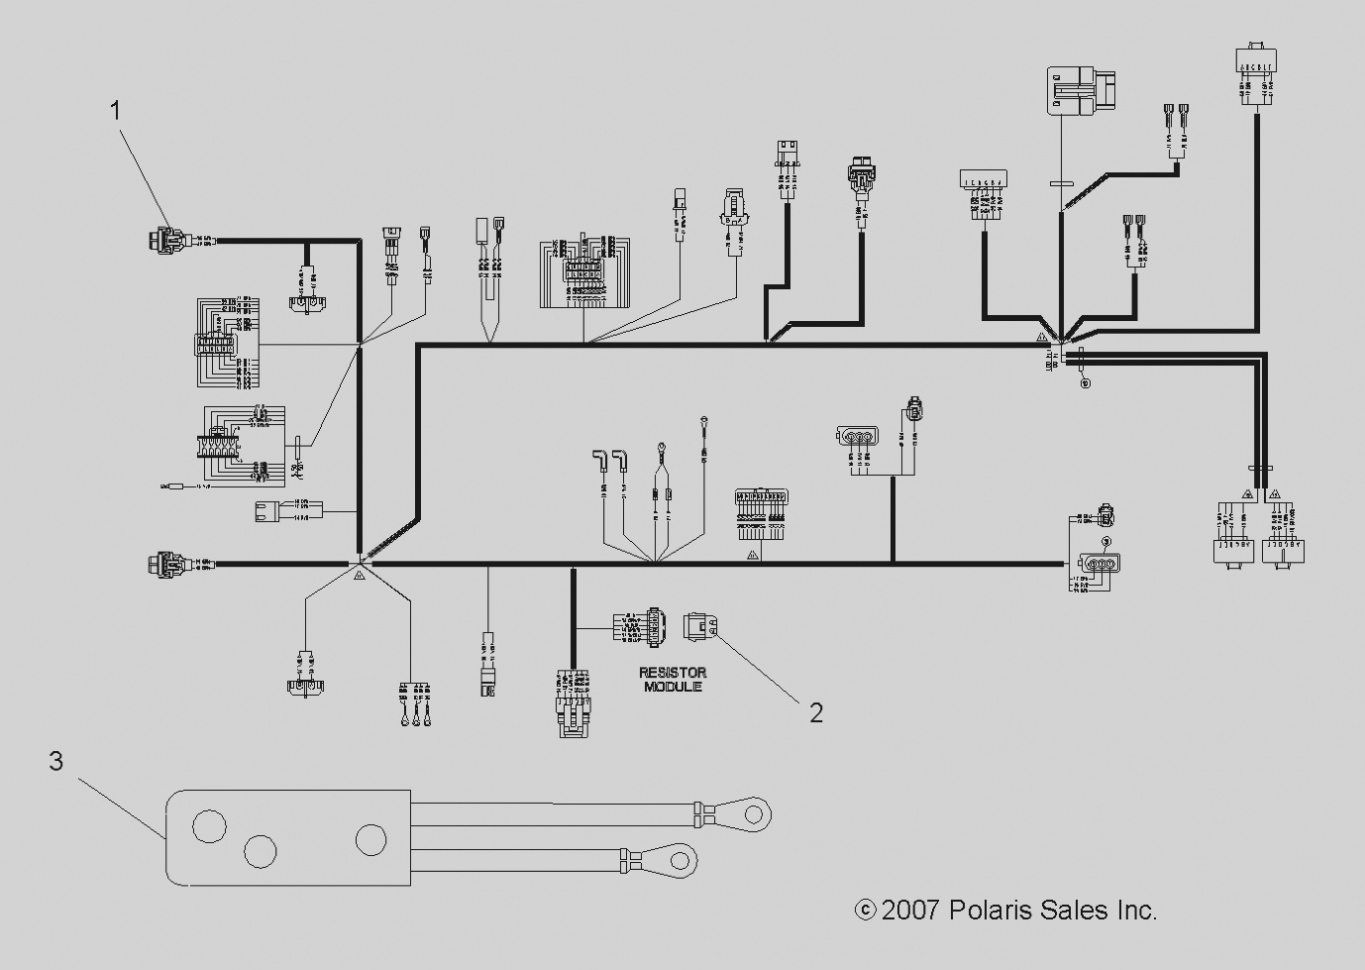 hight resolution of 2011 polaris rzr 800 wiring diagram inspirational 2010 polaris ranger 800 xp wiring diagram 2011